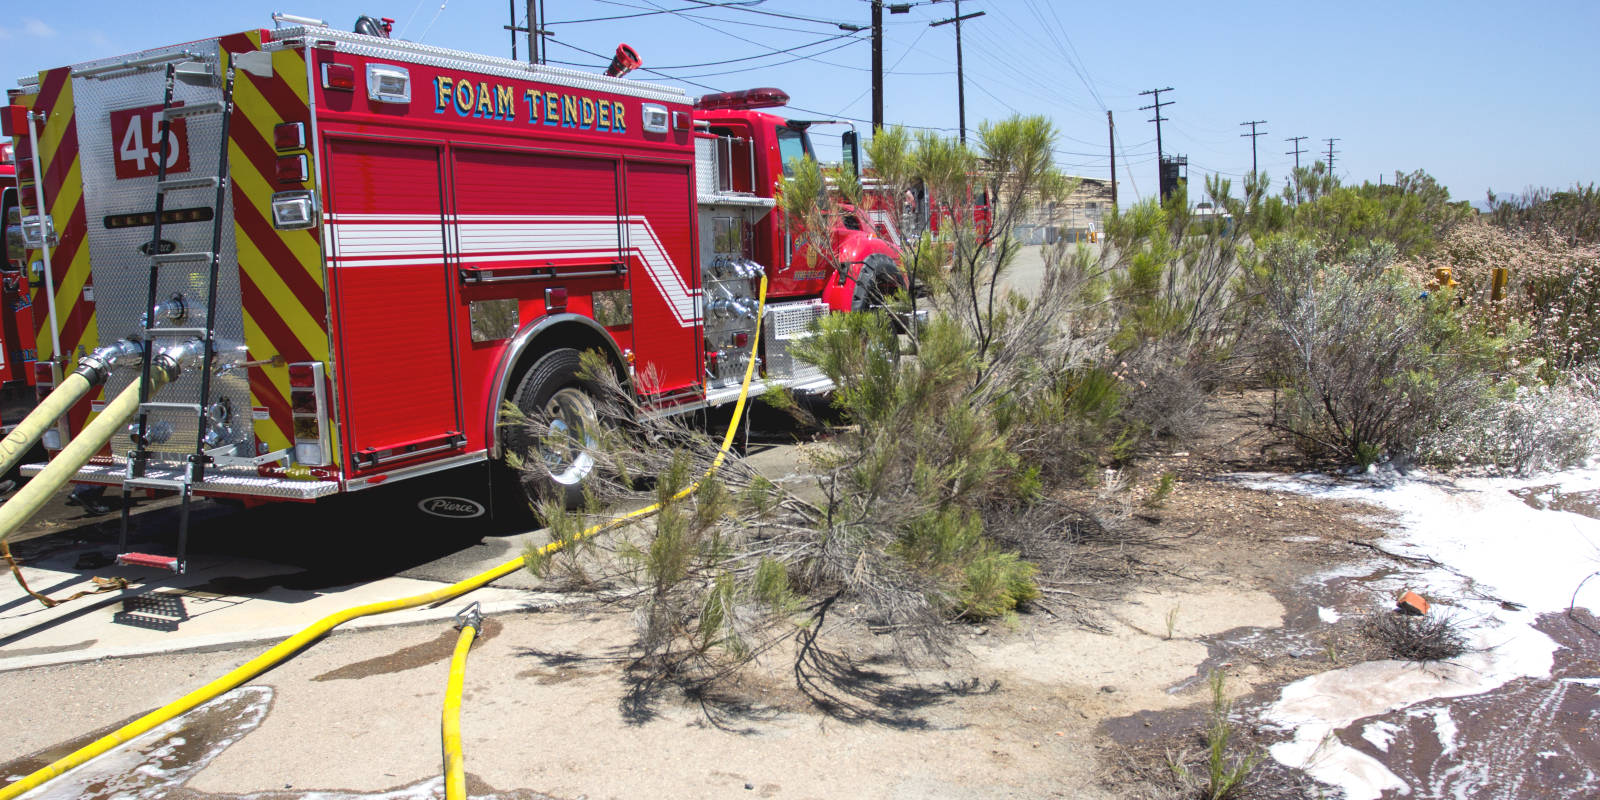 San Diego City's foam tender on a test site